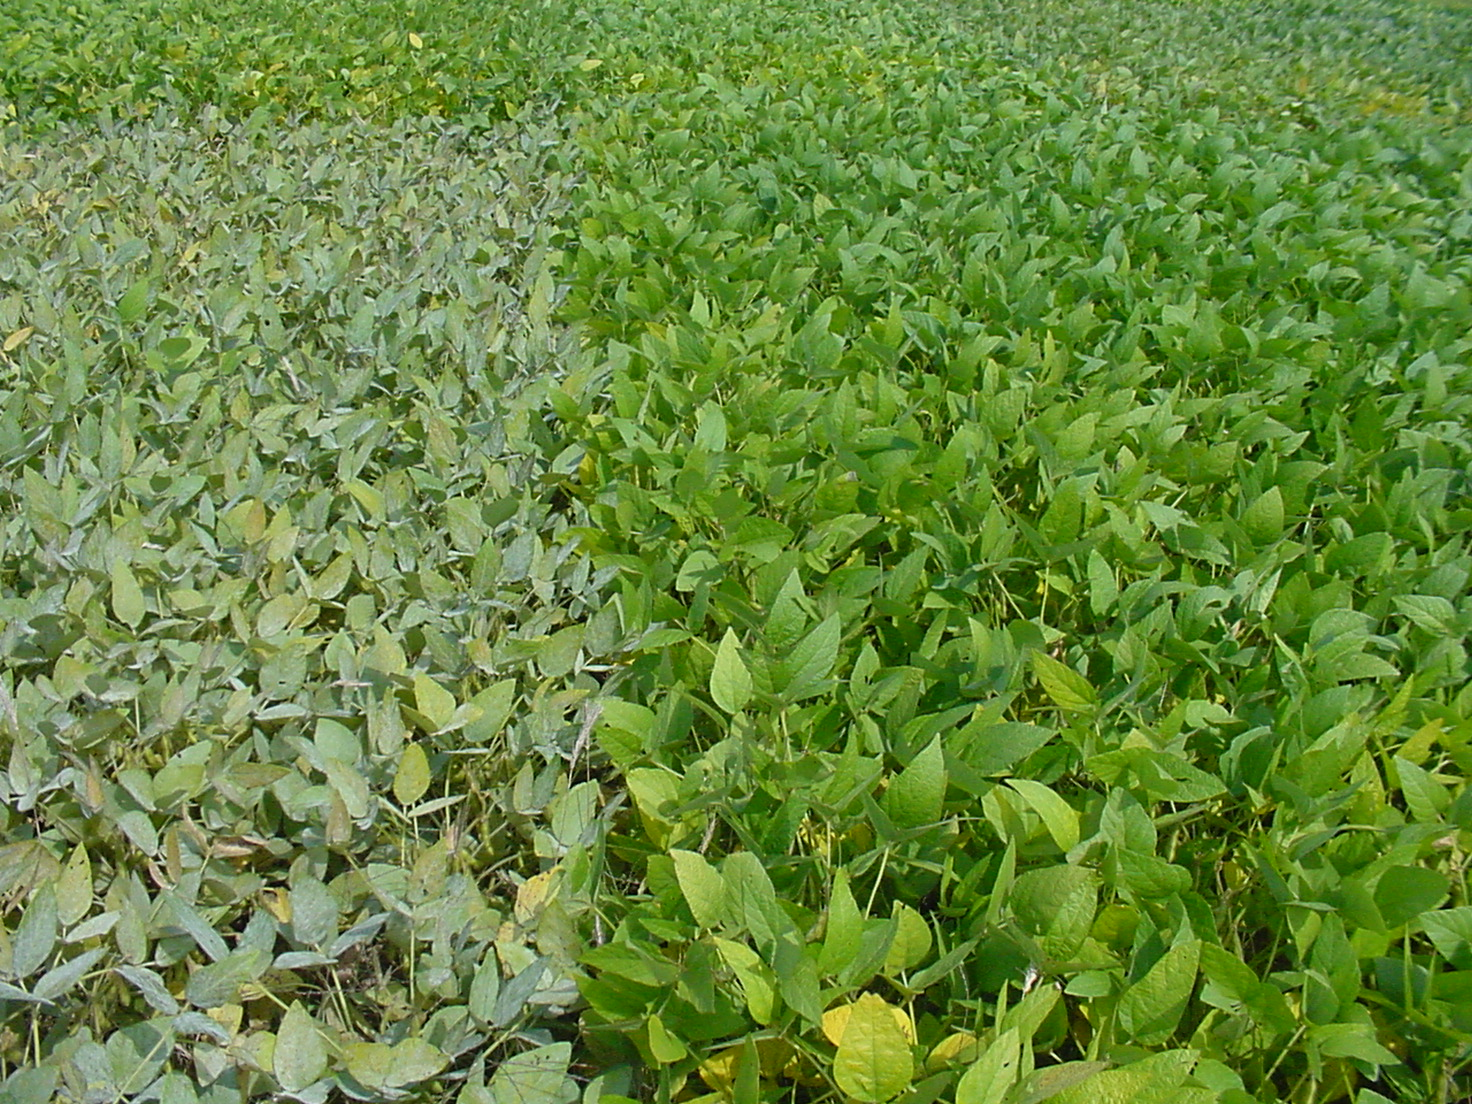 Variety susceptible to powdery mildew (left) compared to resistant variety (right).